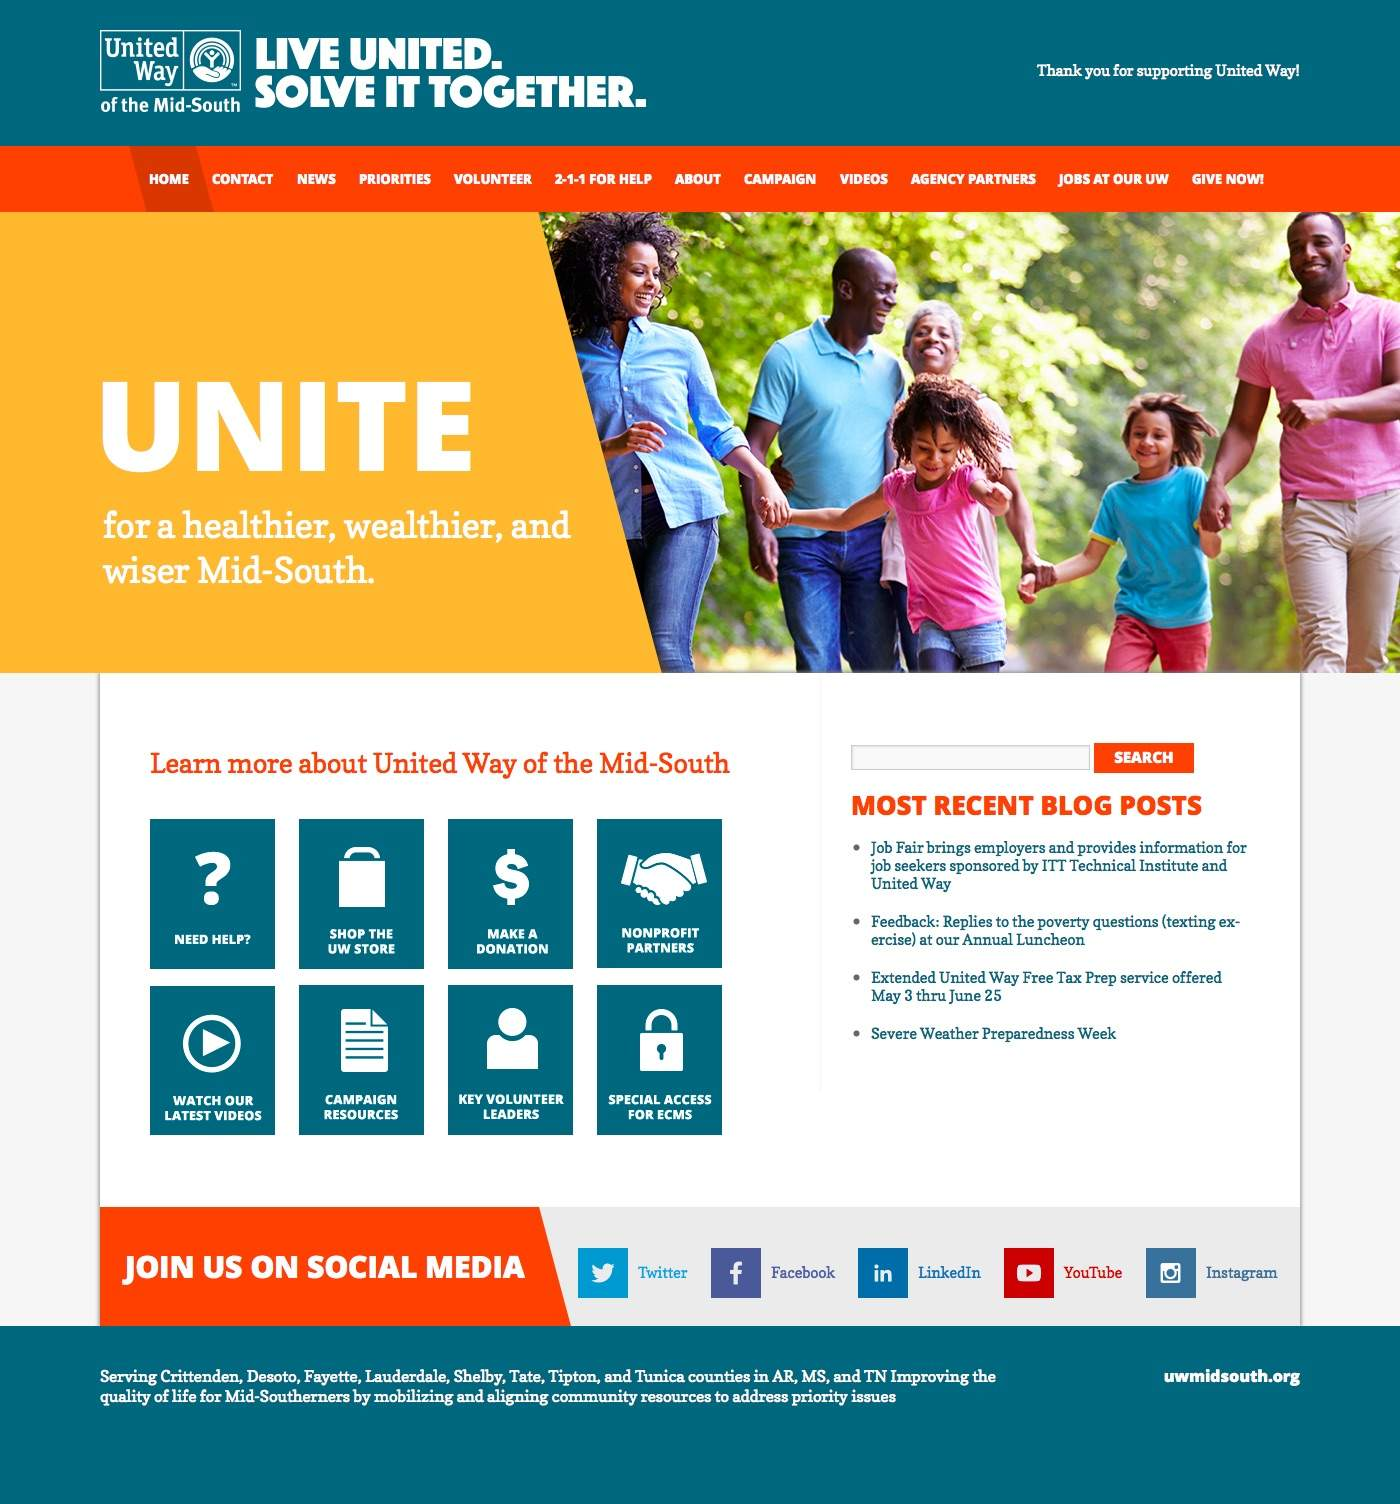 uwmidsouth.org | Thank you for supporting United Way!